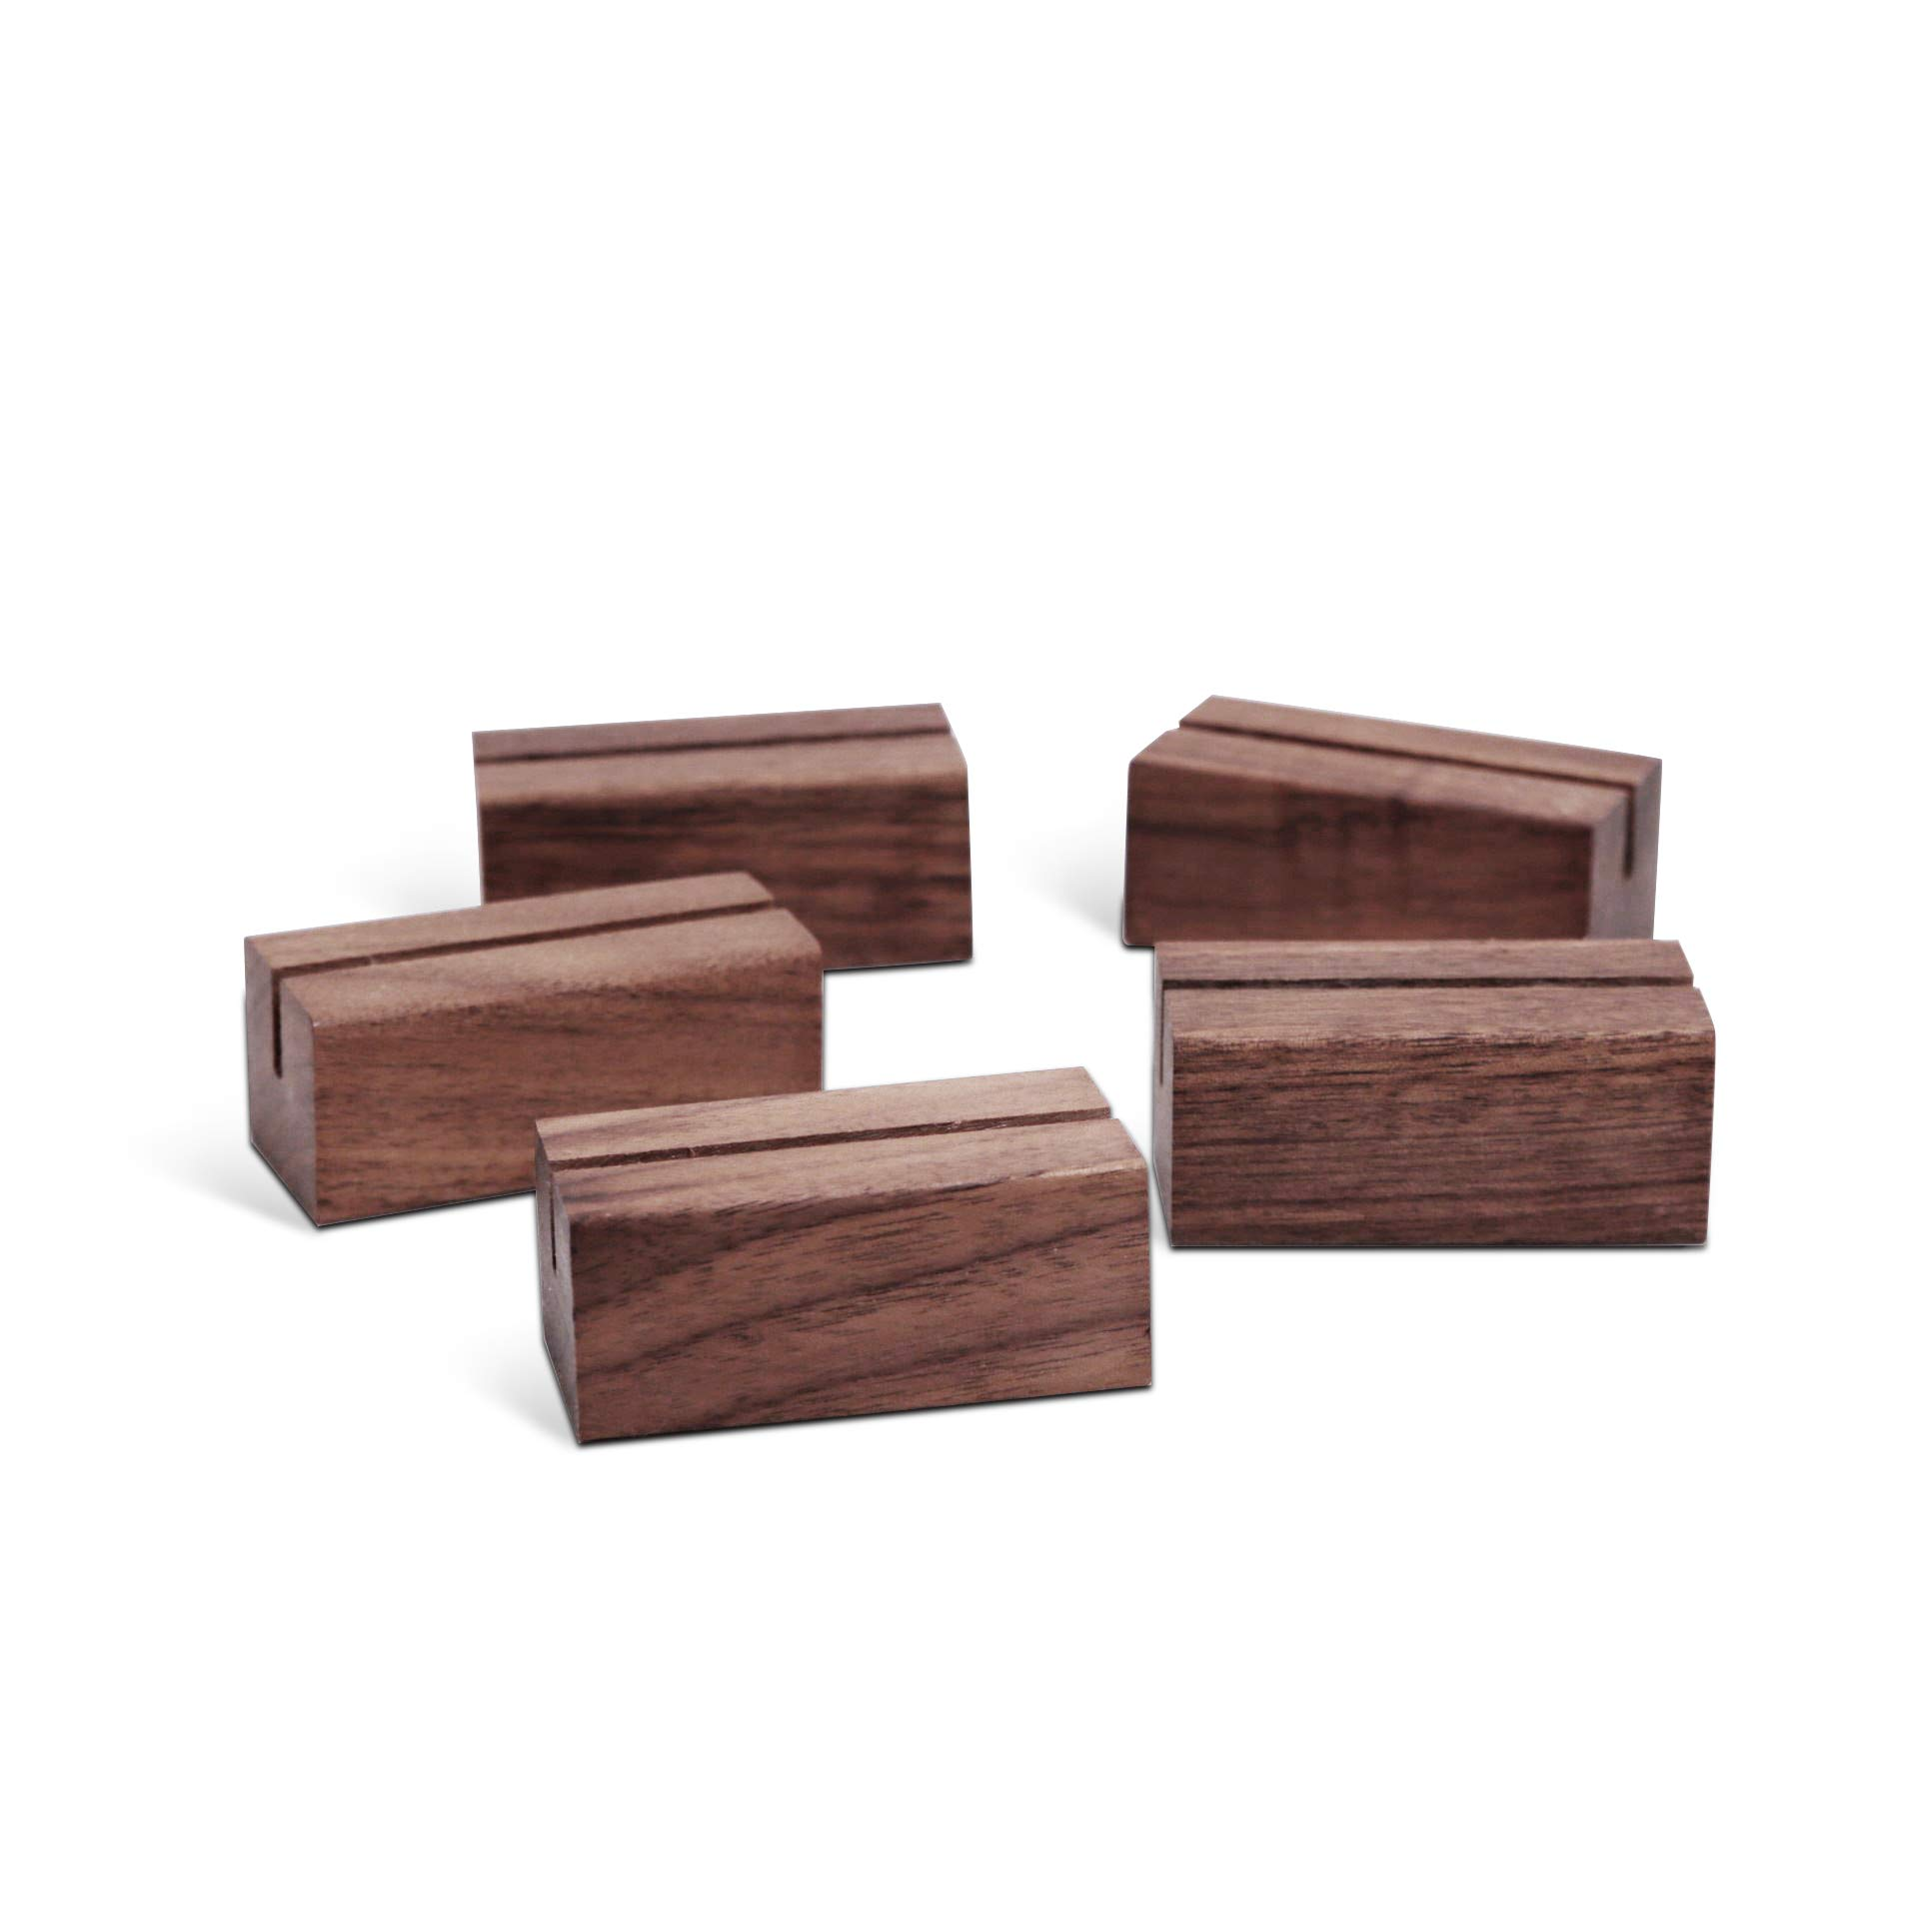 UNIQOOO 20 Pack Place Card Holders | Rustic Walnut Wood Escort Cards Display Stands | Table Number Sign Stand | Photo Stand | Perfect for Retail Shop Cafe Home Wedding Dinner Party Events Decoration by UNIQOOO